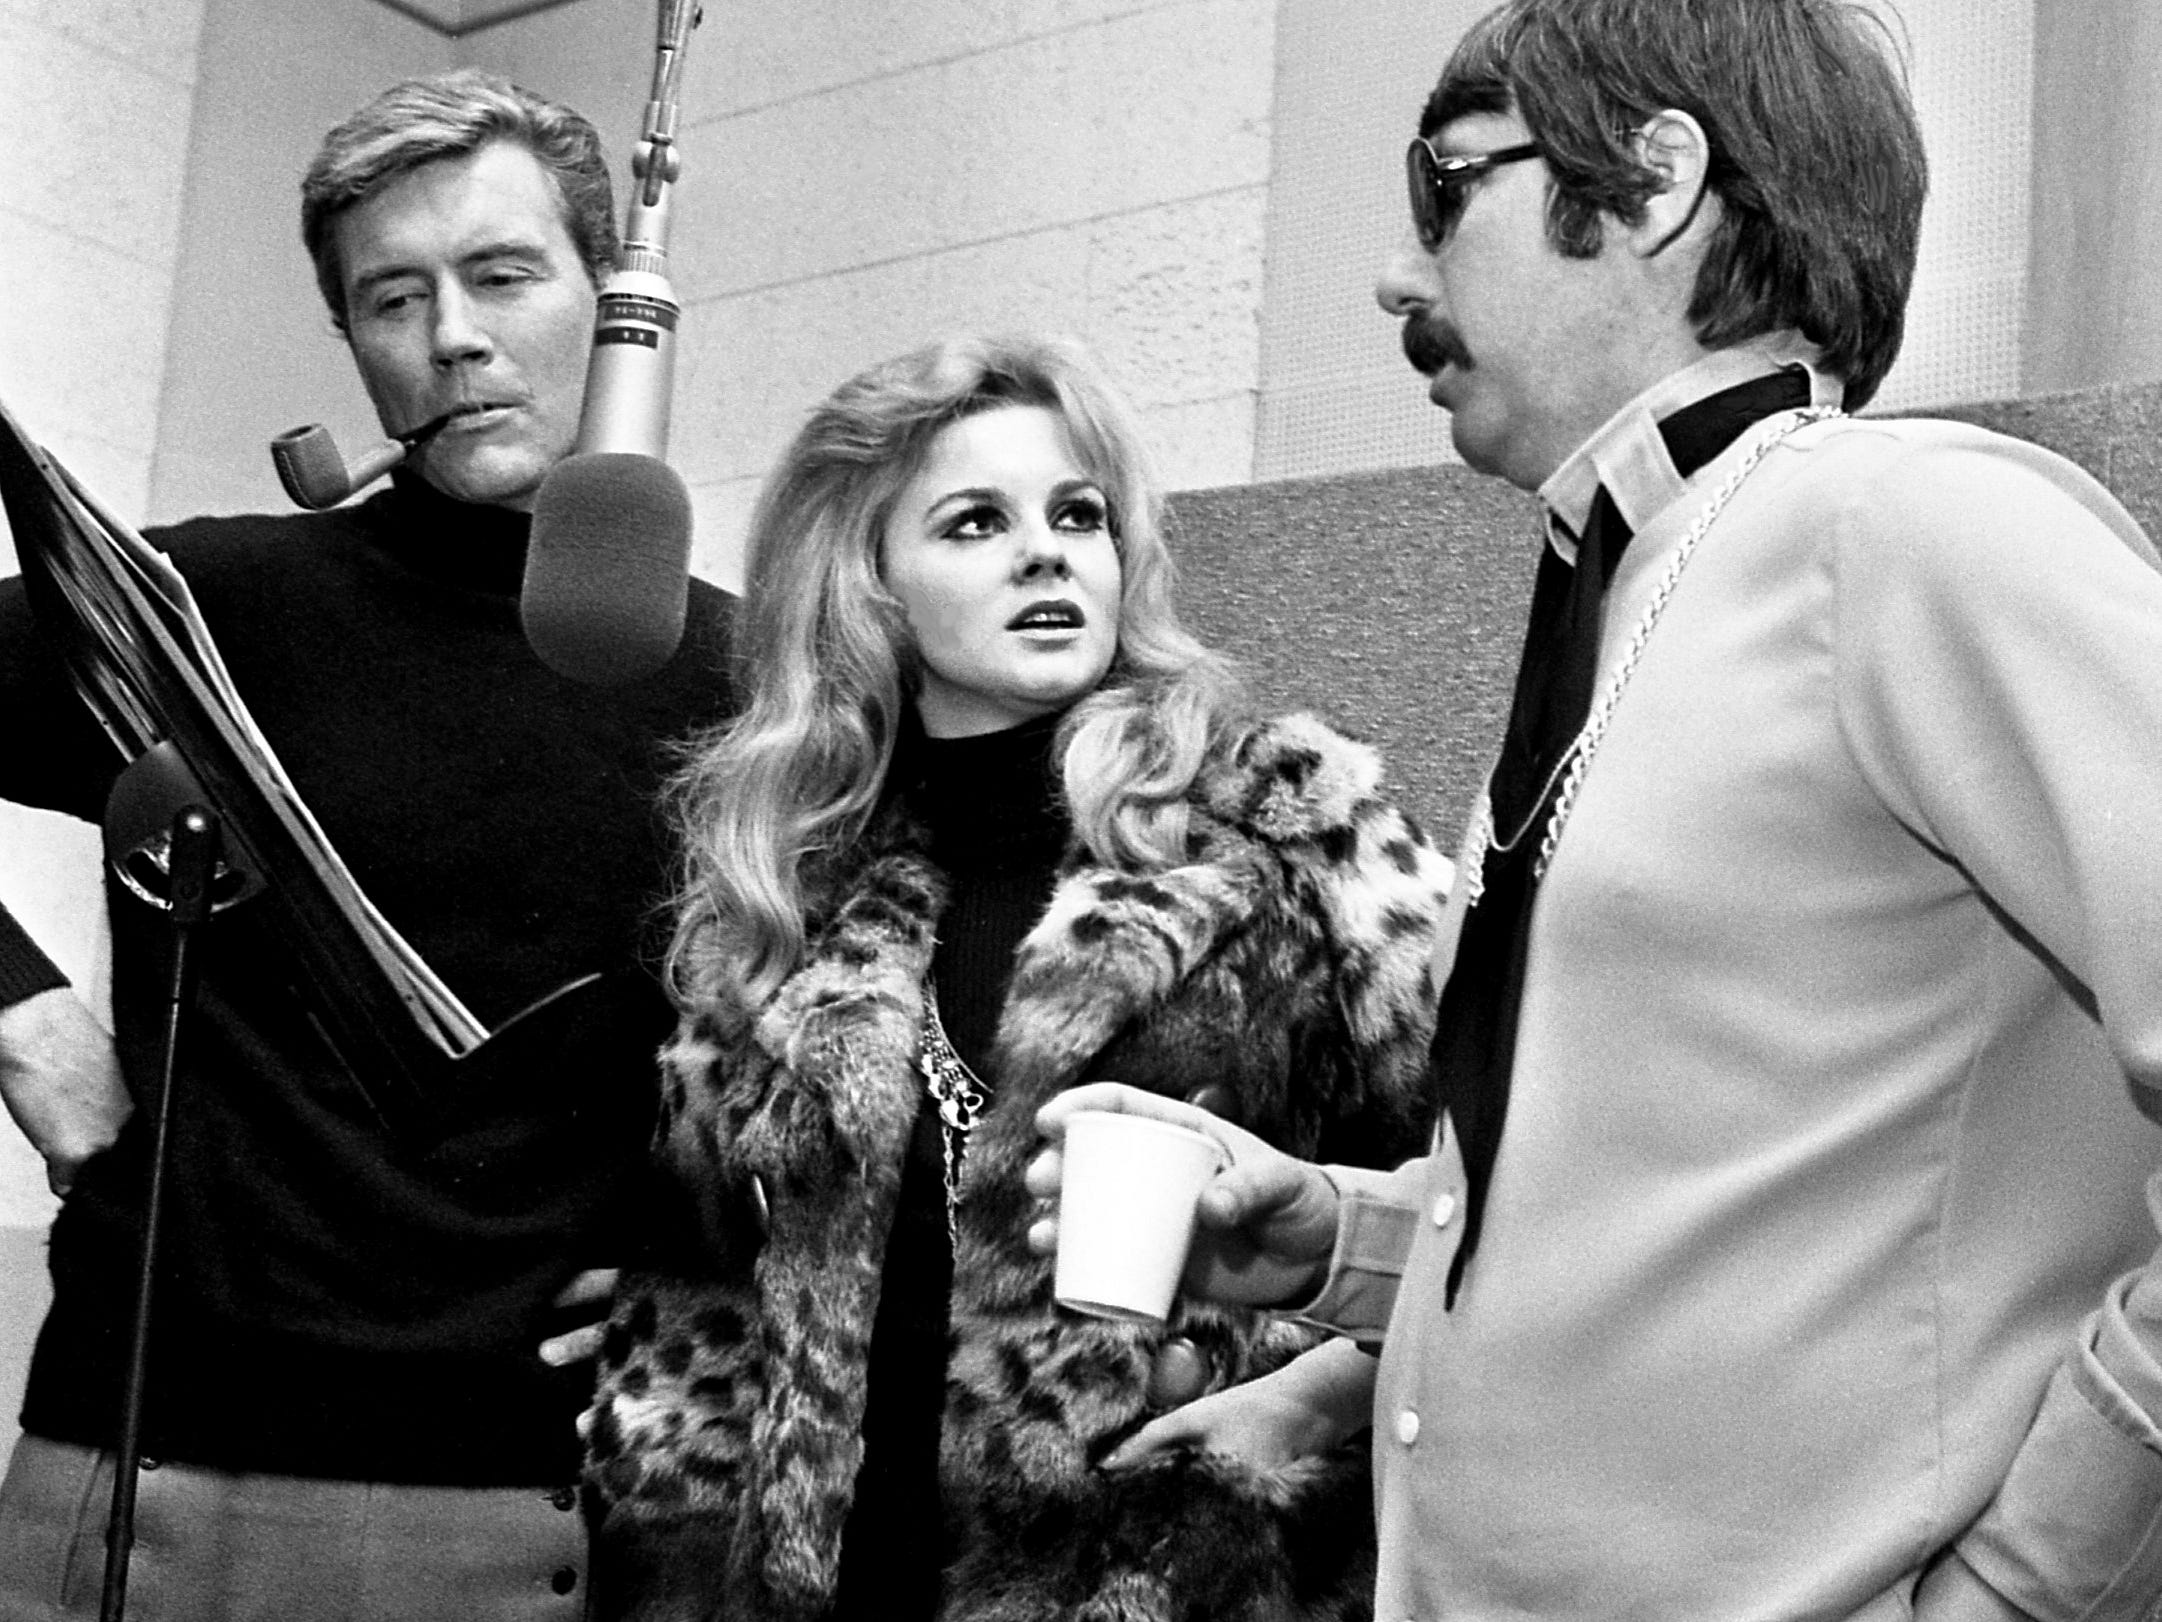 Actress and singing star Ann-Margret, center, tries out a song at RCA Victor studios on 17th Avenue on Jan. 27, 1969, with recording executive Lee Hazelwood, right. Roger Smith, left, the star's husband, assisted as she worked to make her first country music album for and with Hazelwood.